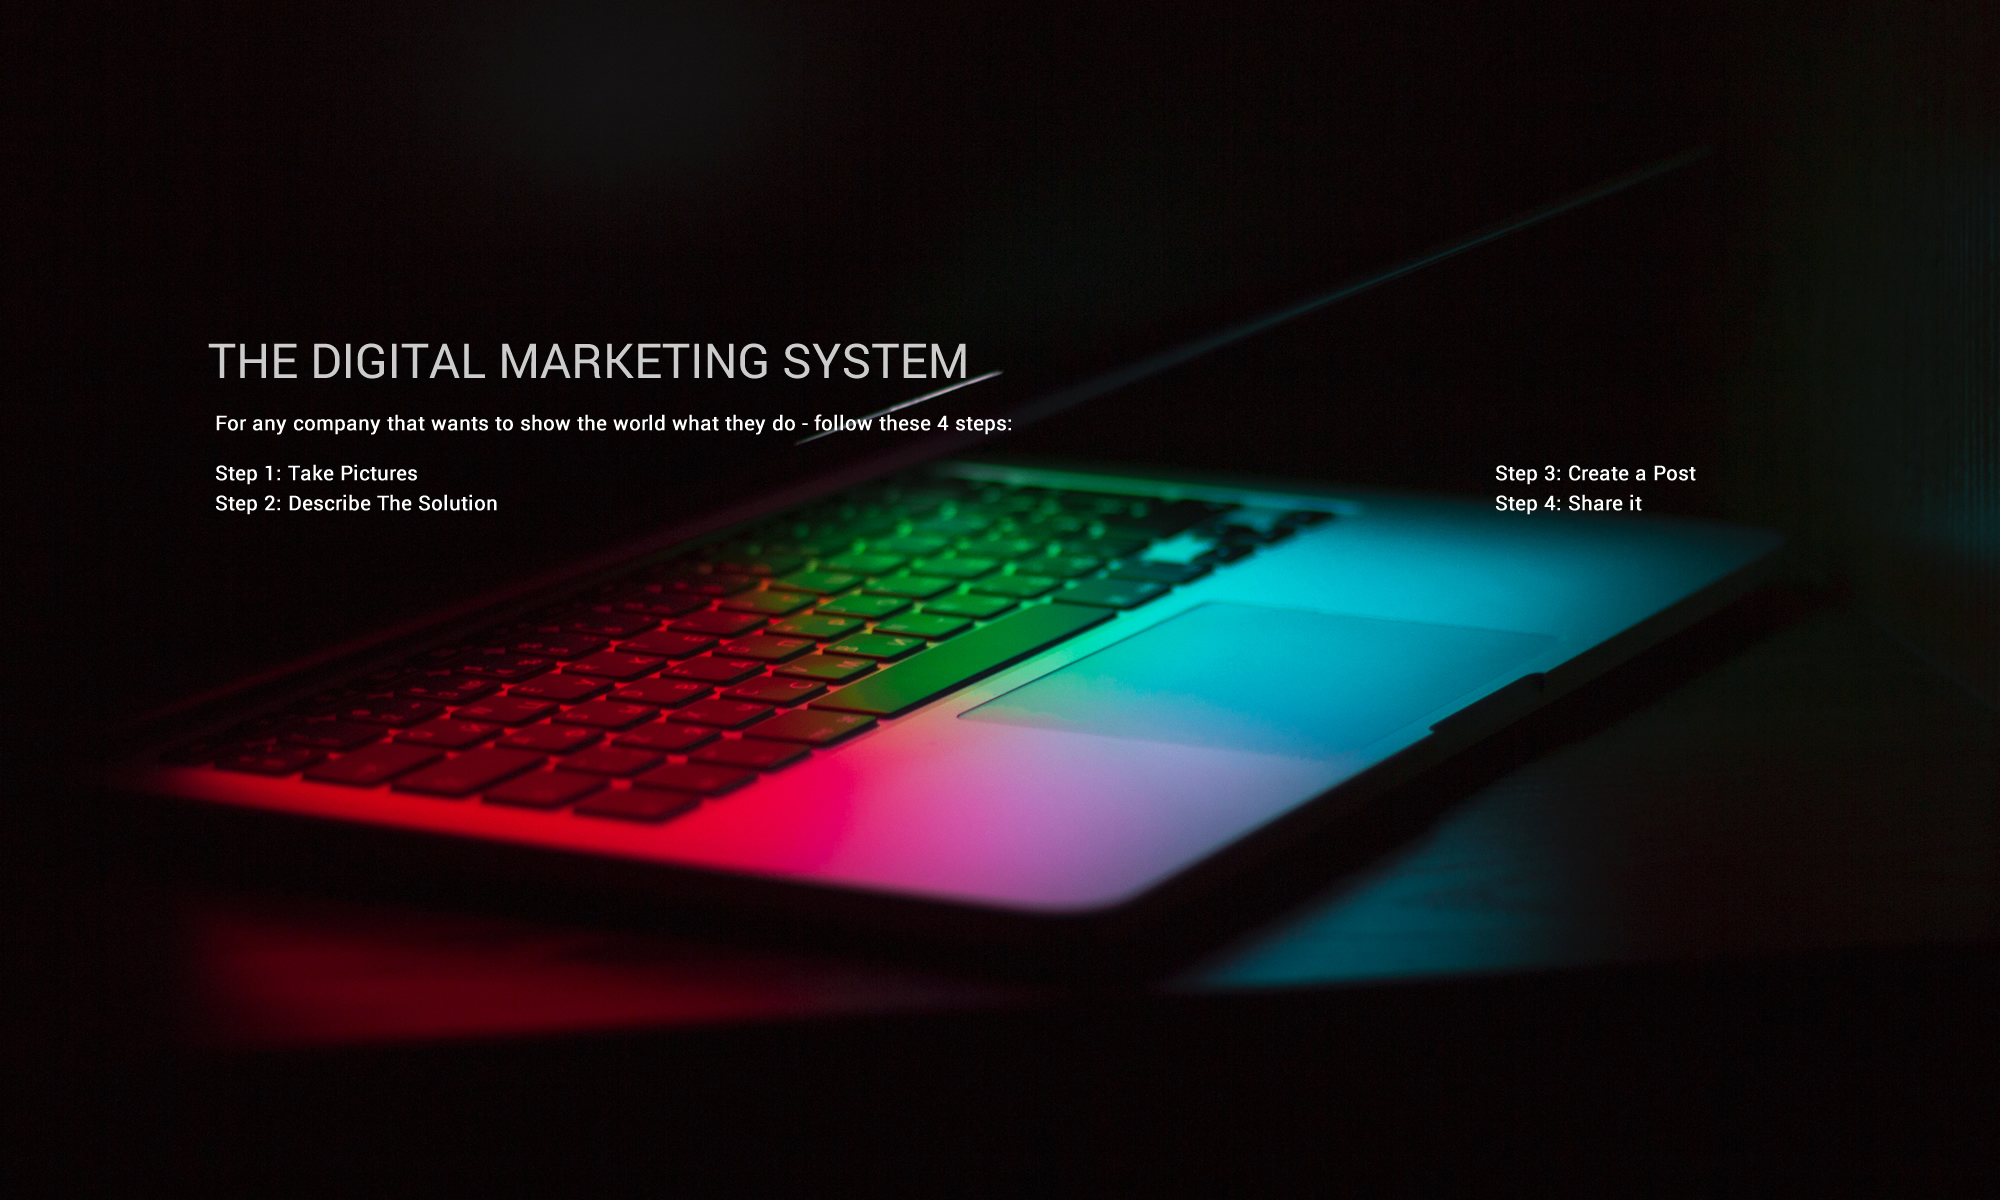 The Digital Marketing System